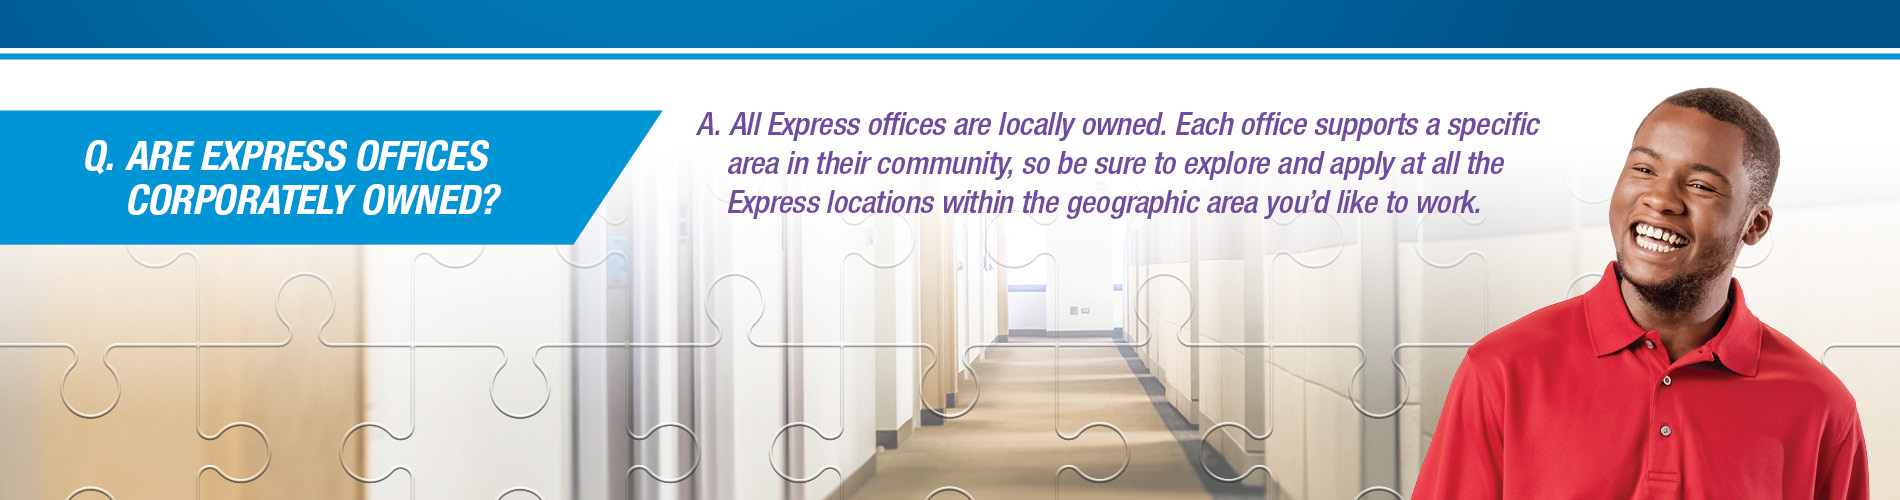 What Is Express? - Are Express Offices Corporately Owned?